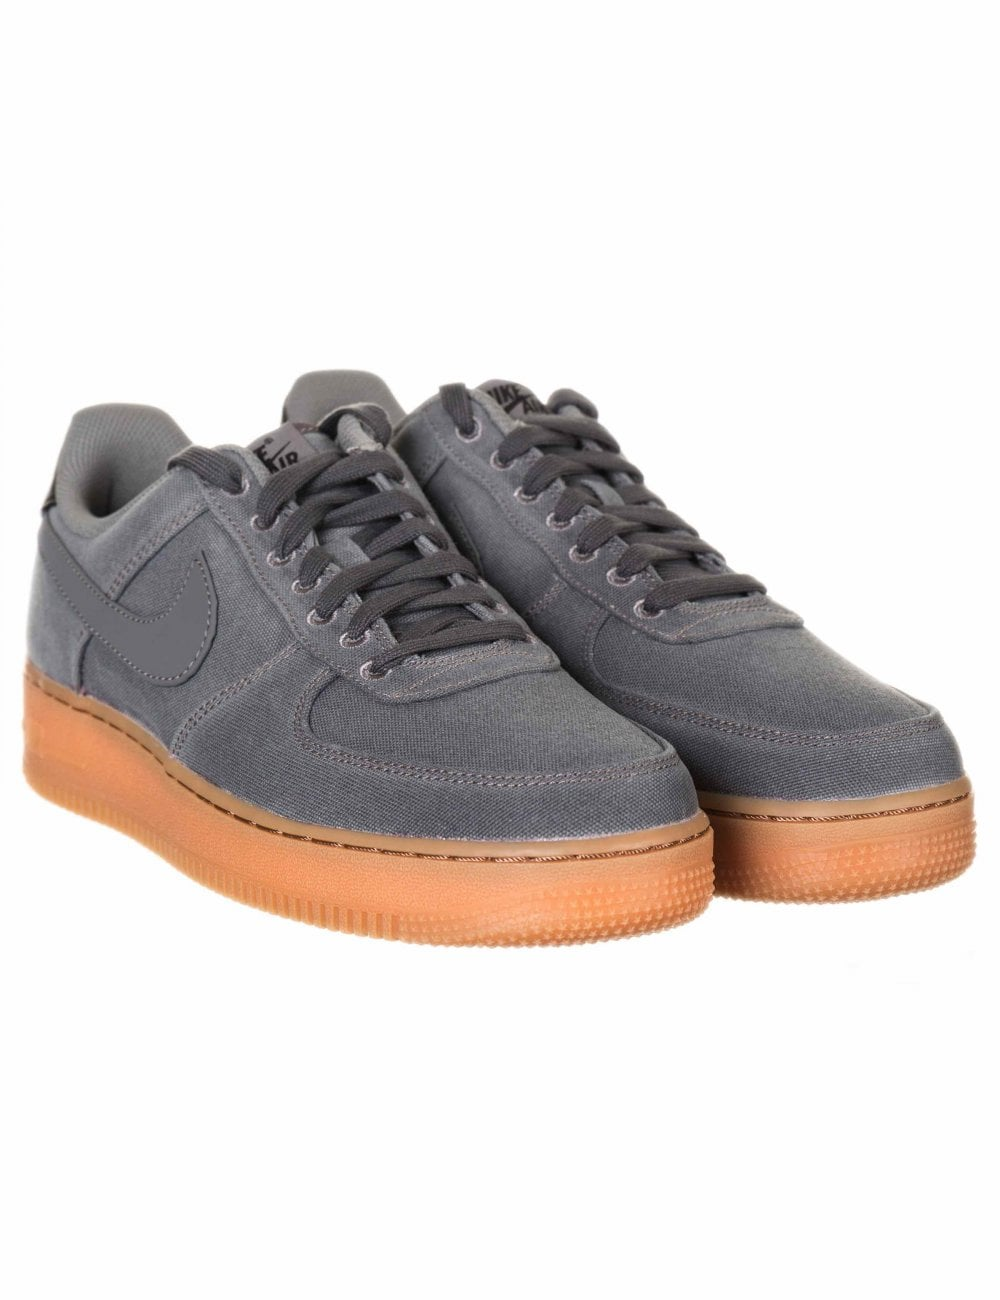 new style 5dede 68183 Nike Air Force 1  07 LV8 Trainers - Flat Pewter Gum